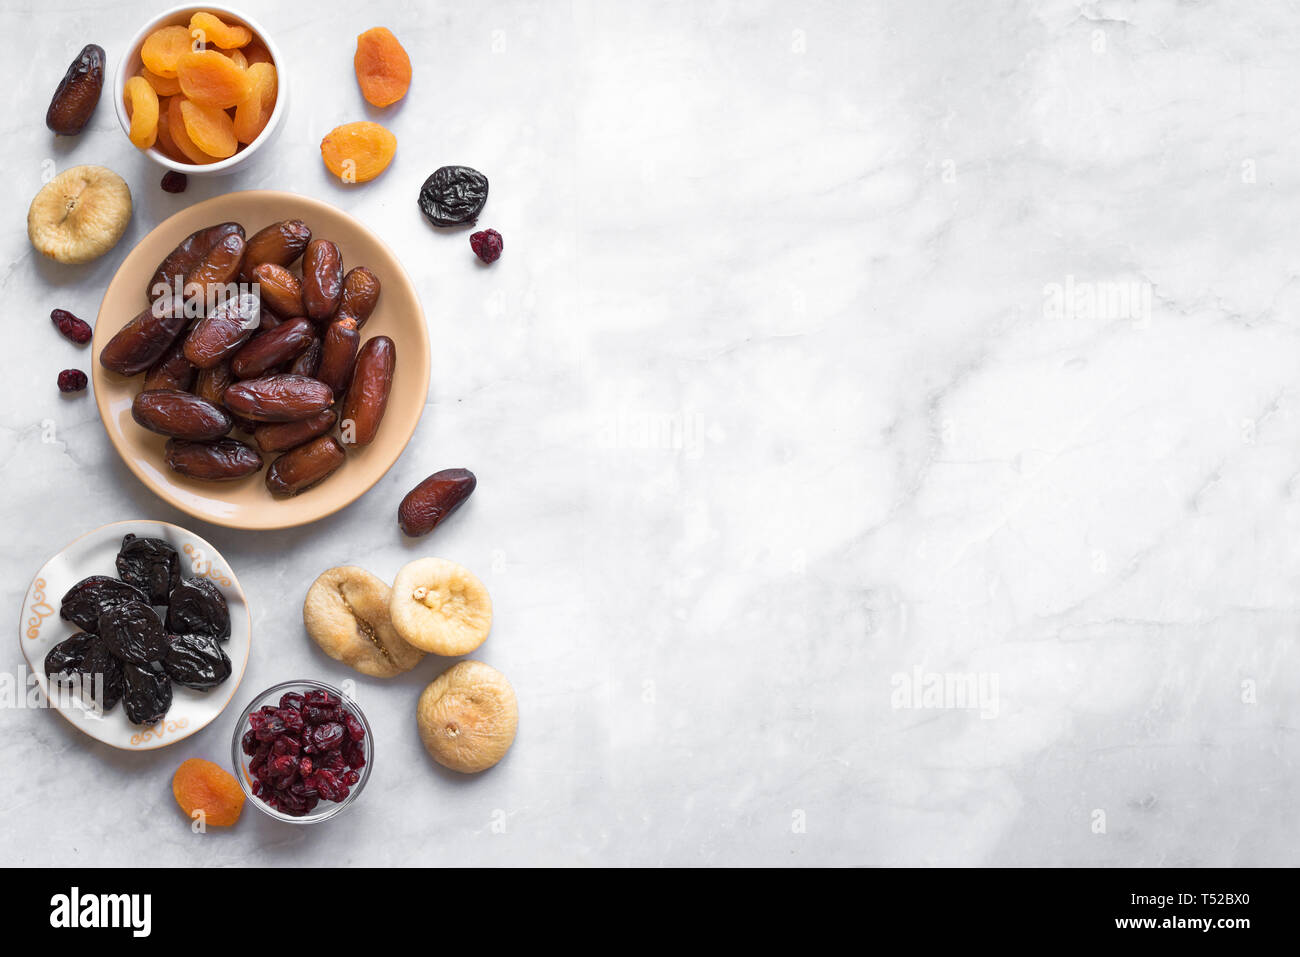 Dried fruits in bowls on white marble background, top view, copy space. Healthy snack - assortment of organic dry fruits. Stock Photo